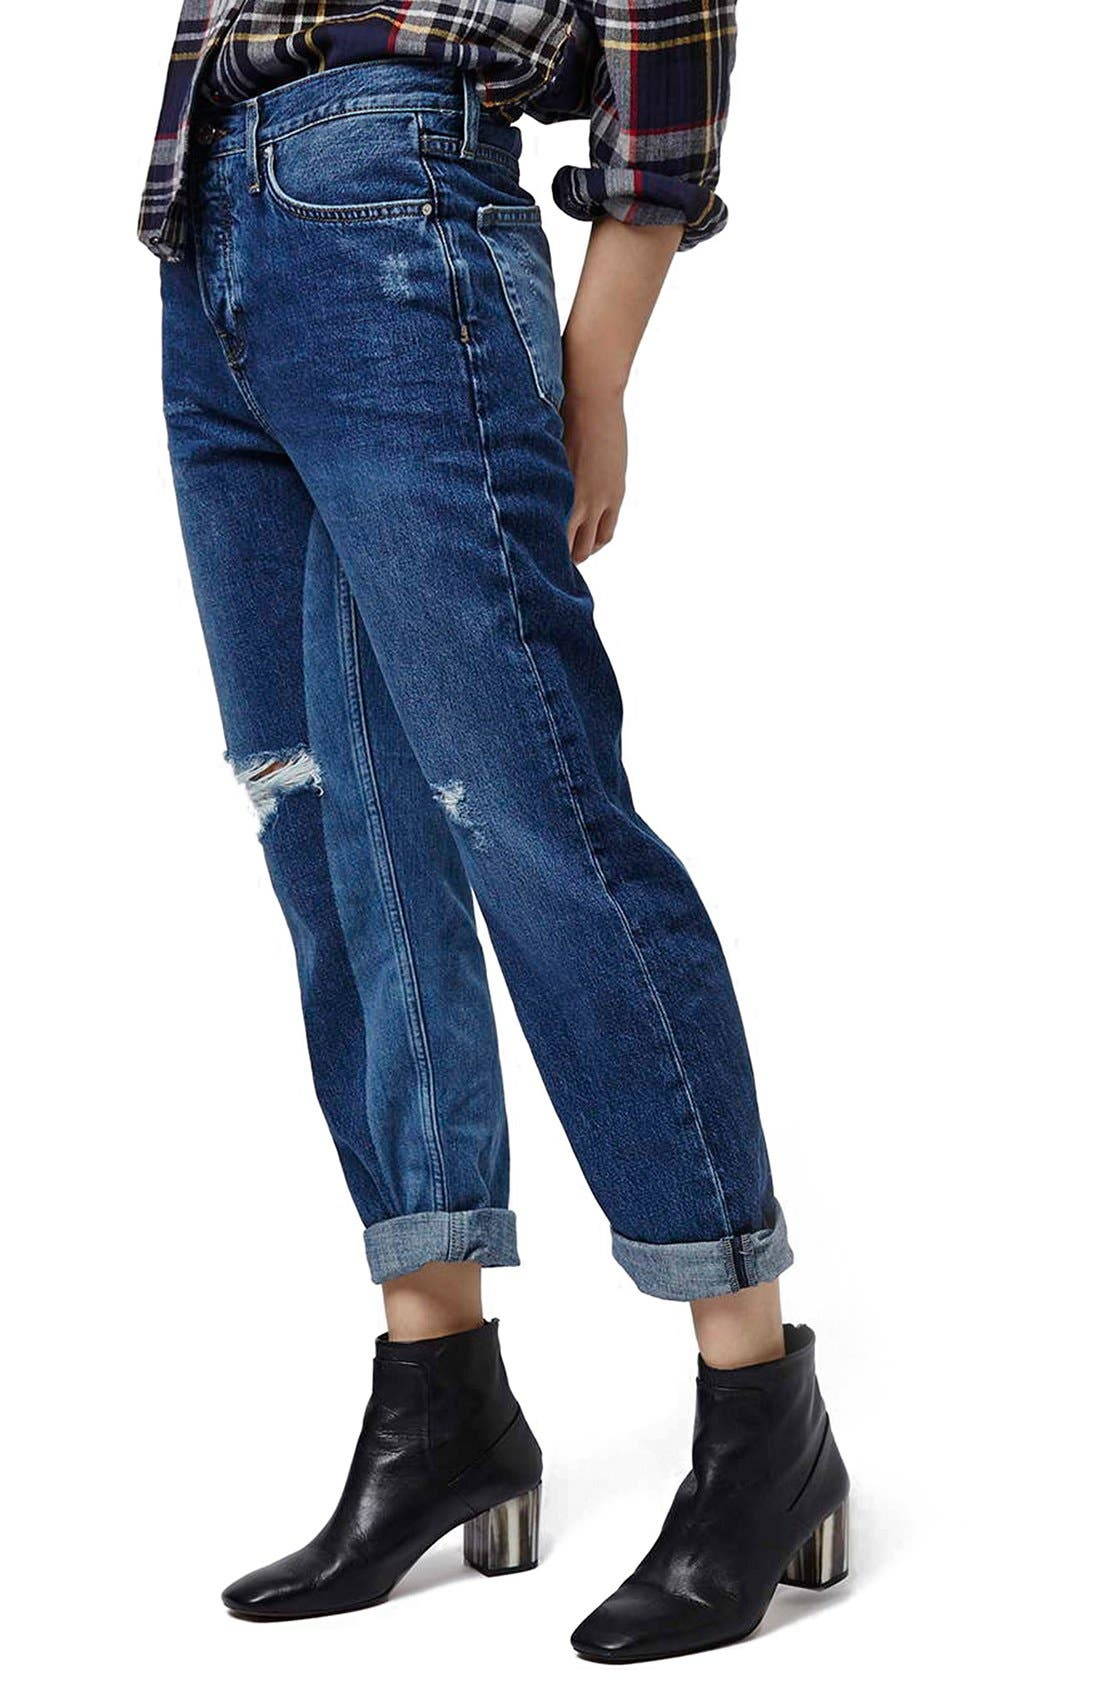 Alternate Image 1 Selected - Topshop 'Patch' Two Tone High Rise Boyfriend Jeans